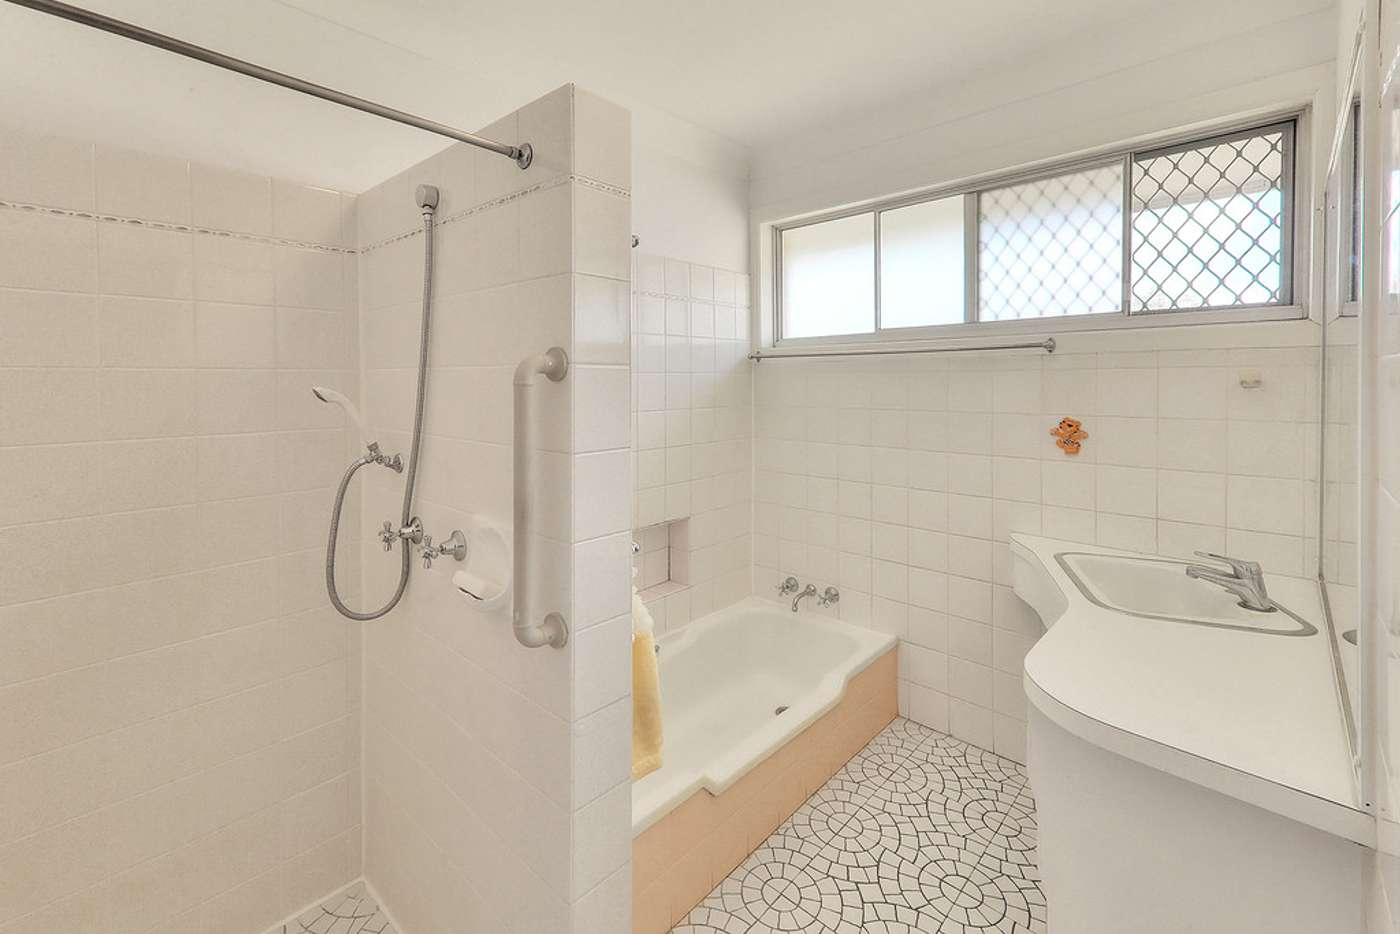 Sixth view of Homely house listing, 101 Windmill St, Tarragindi QLD 4121